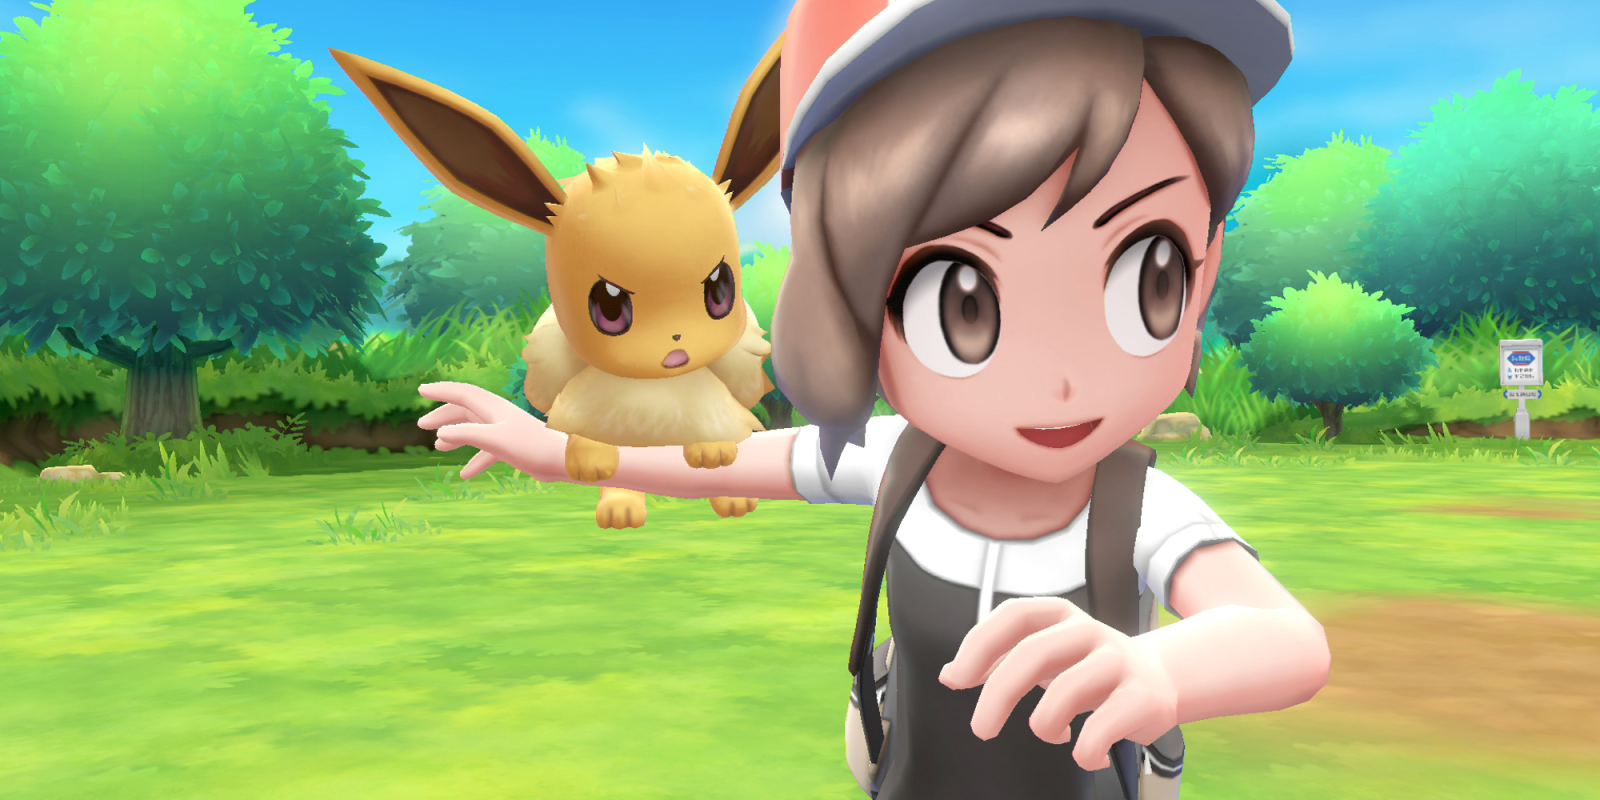 Today's Best Game Deals: Pokémon: Let's Go Pikachu/Eevee $45, Skyrim for Switch $45, more